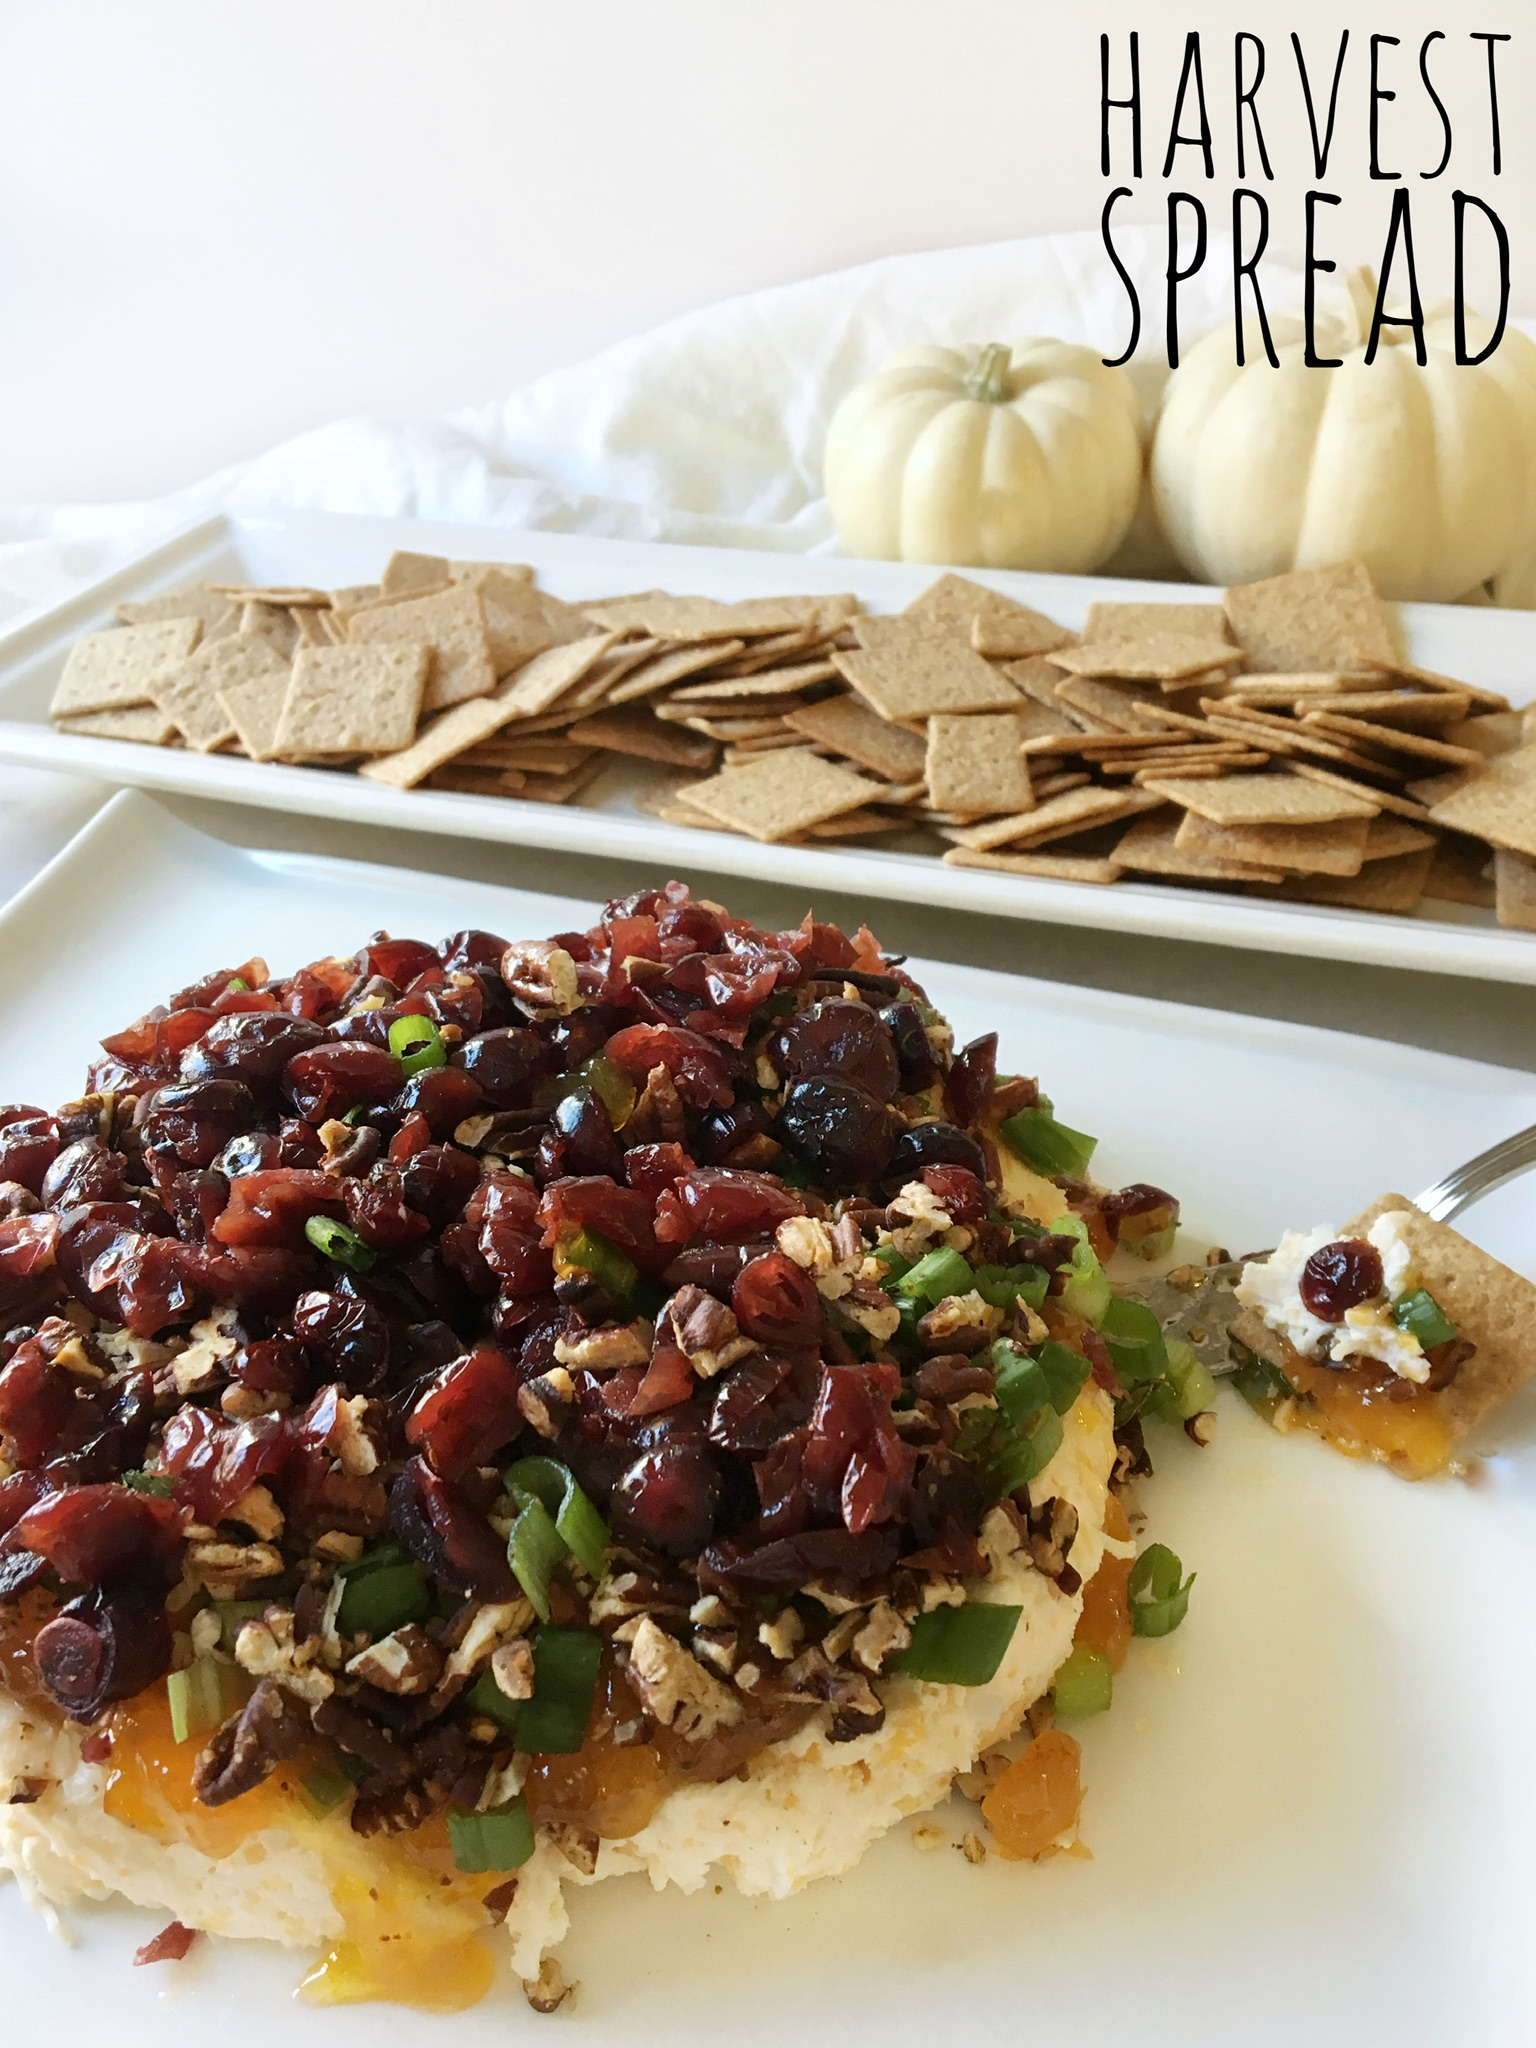 A harvest blend of cheeses, nuts and cranberries to serve with crackers